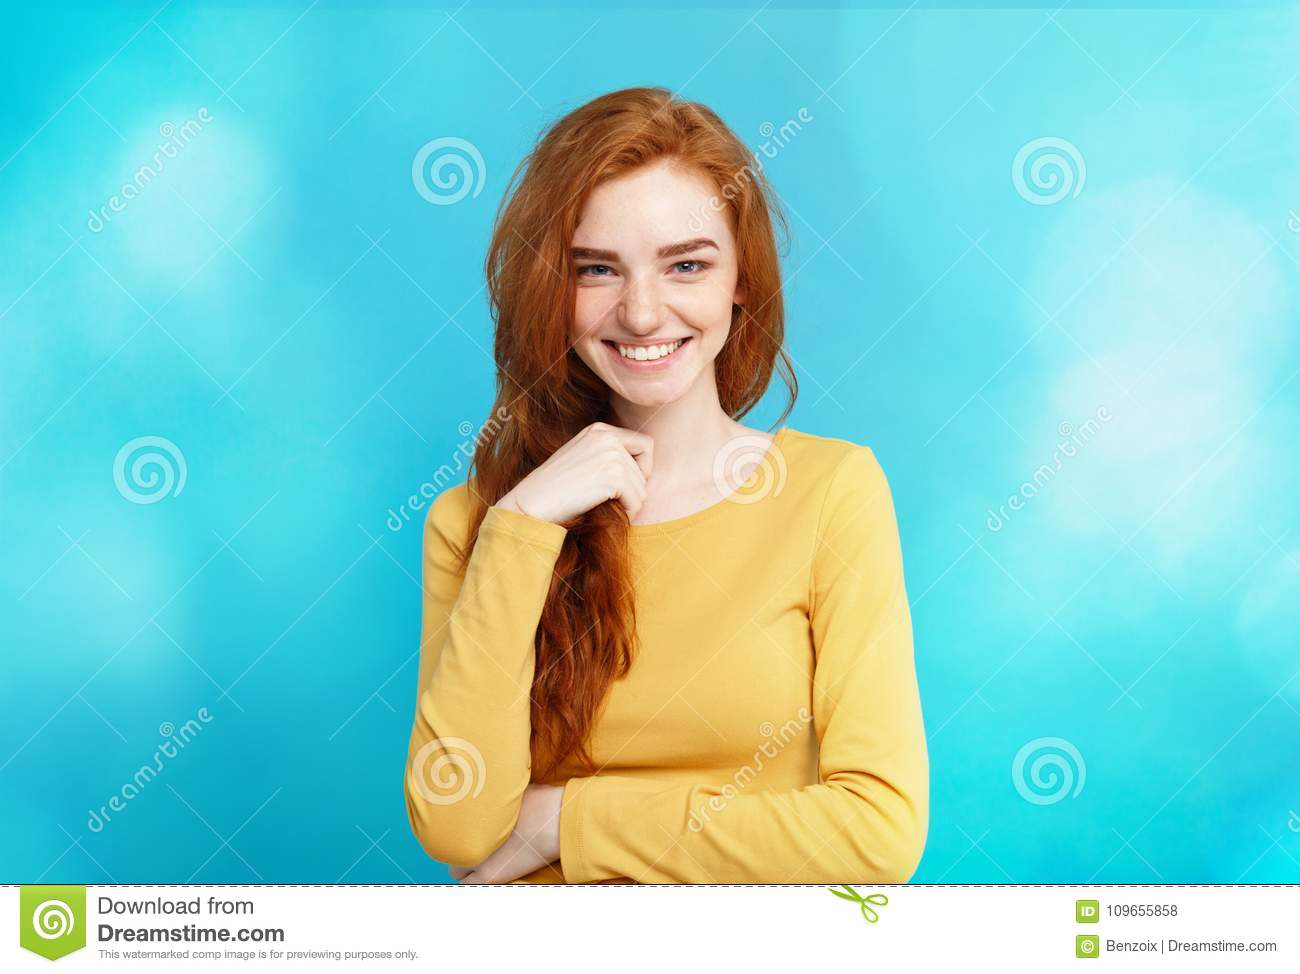 Lifestyle concept - Close up Portrait young beautiful attractive ginger red hair girl playing with her hair with shyness